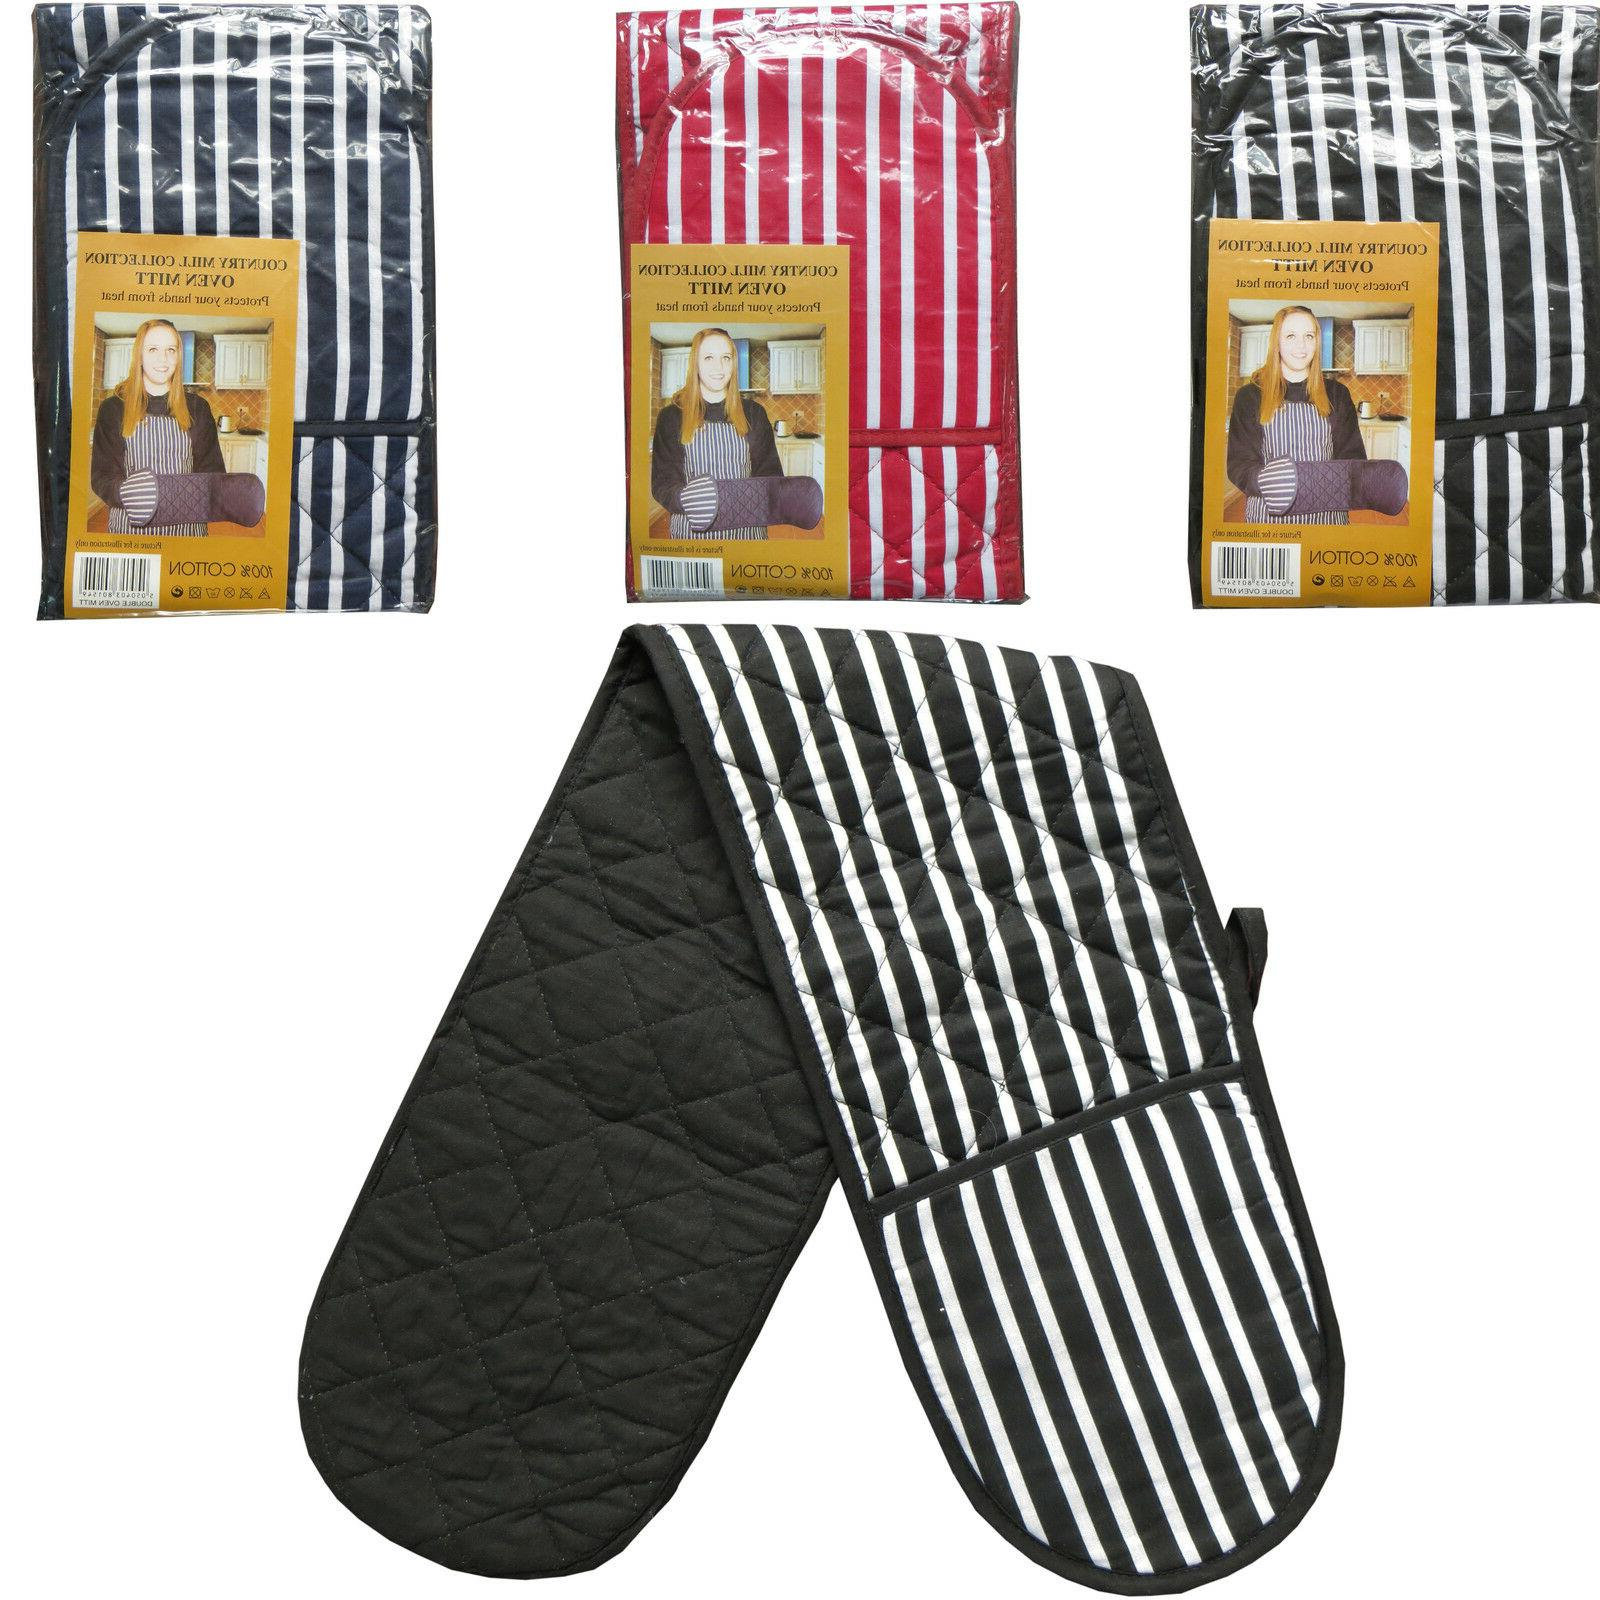 new double cotton insulated padded thick cooking